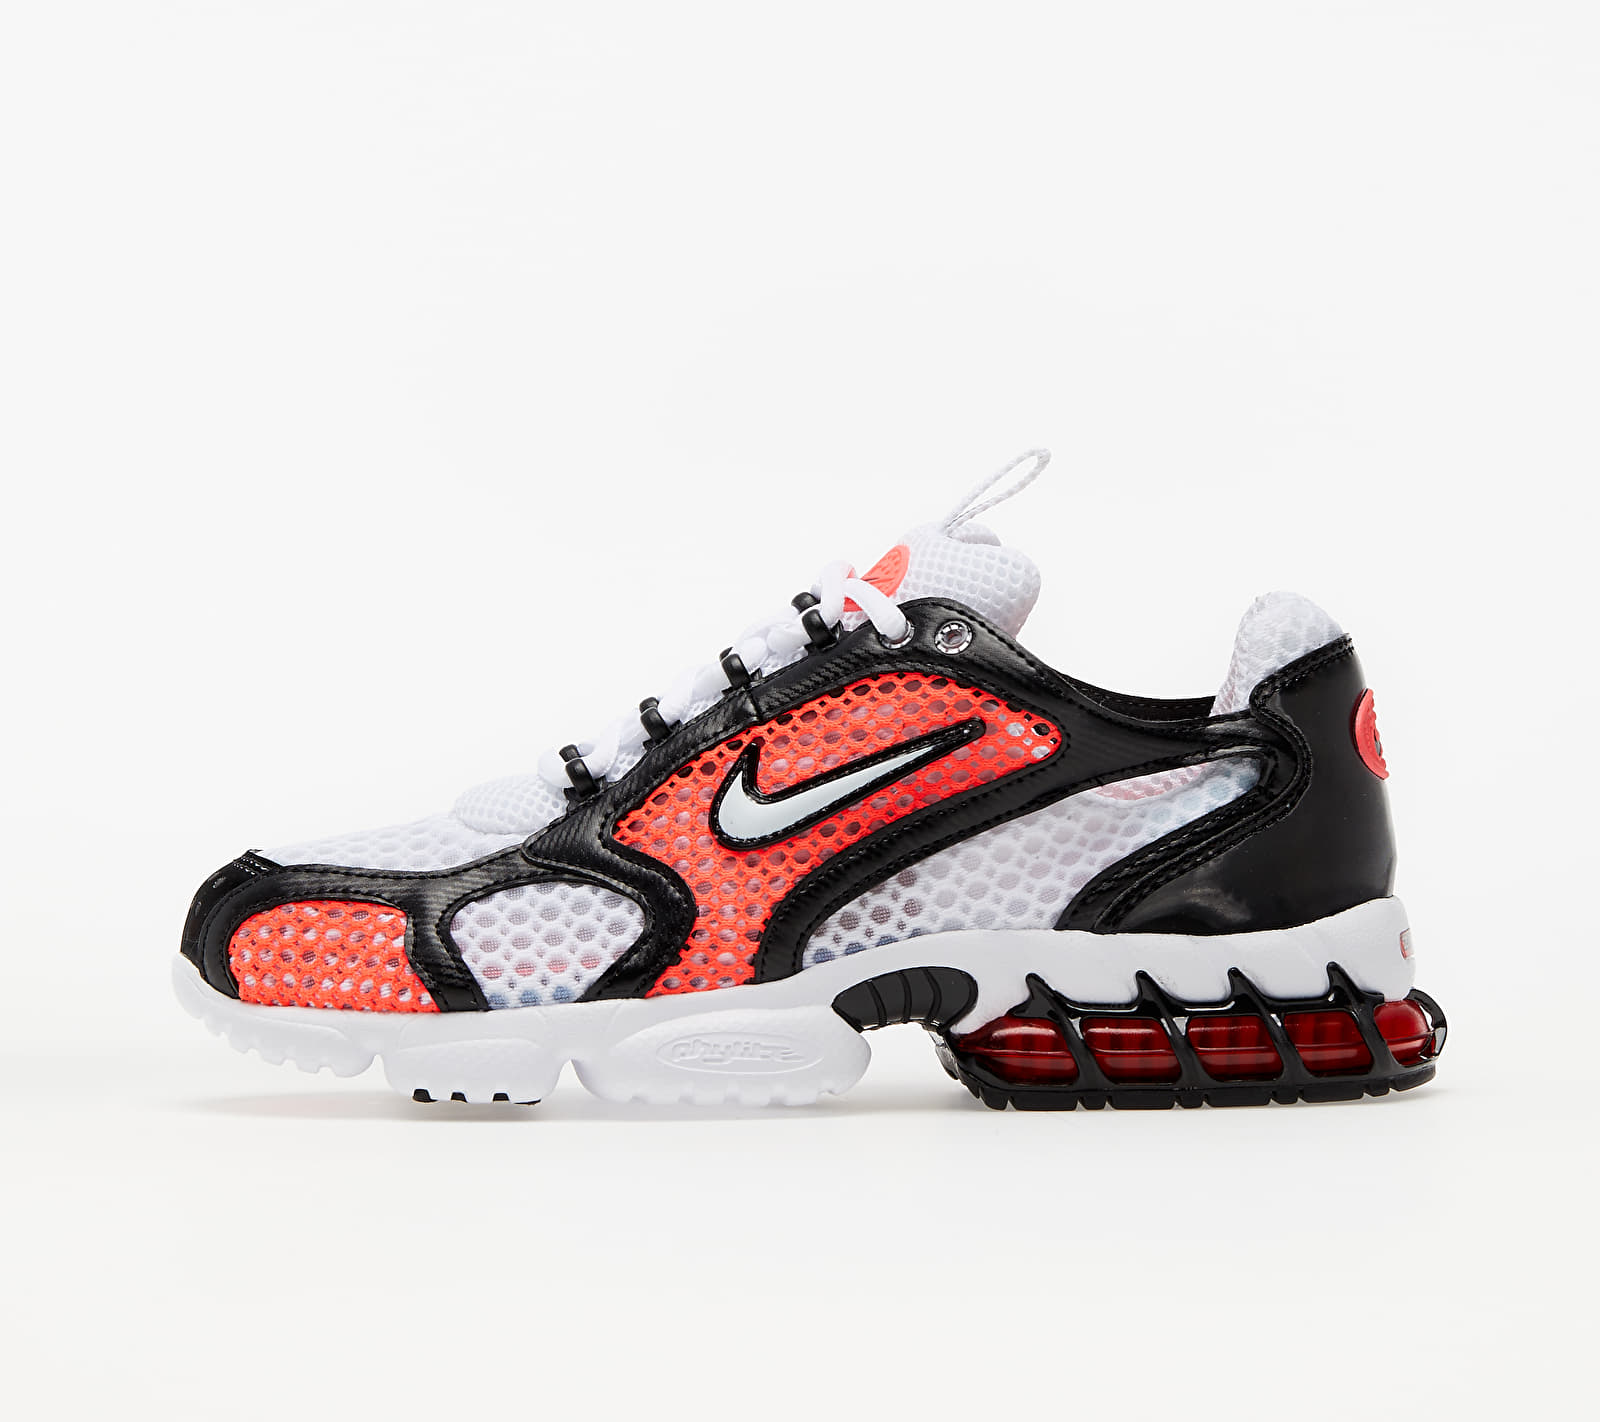 Nike Air Zoom Spiridon Cage 2 (W) White/ White-Flash Crimson-Black EUR 38.5